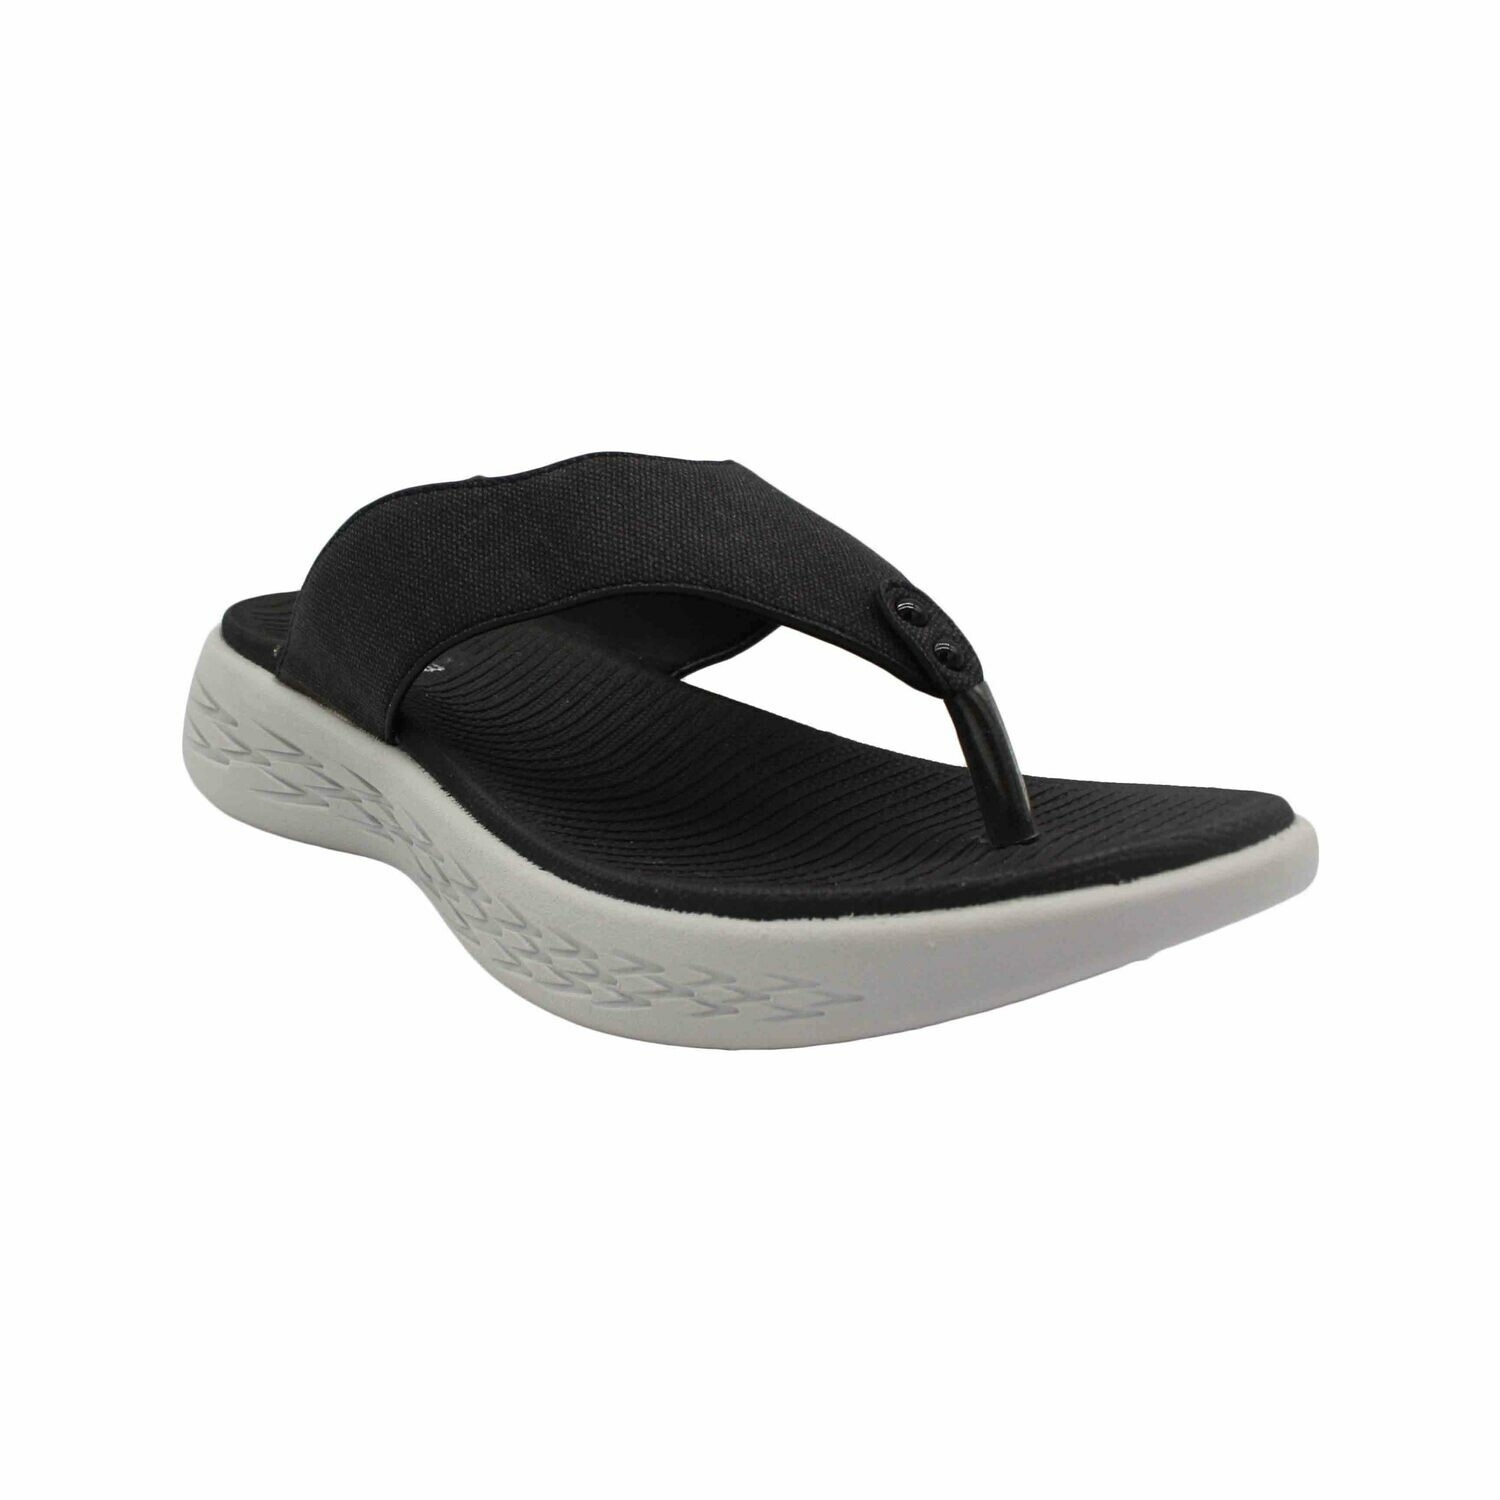 Atlanta Let's Walk Sandal - BLACK